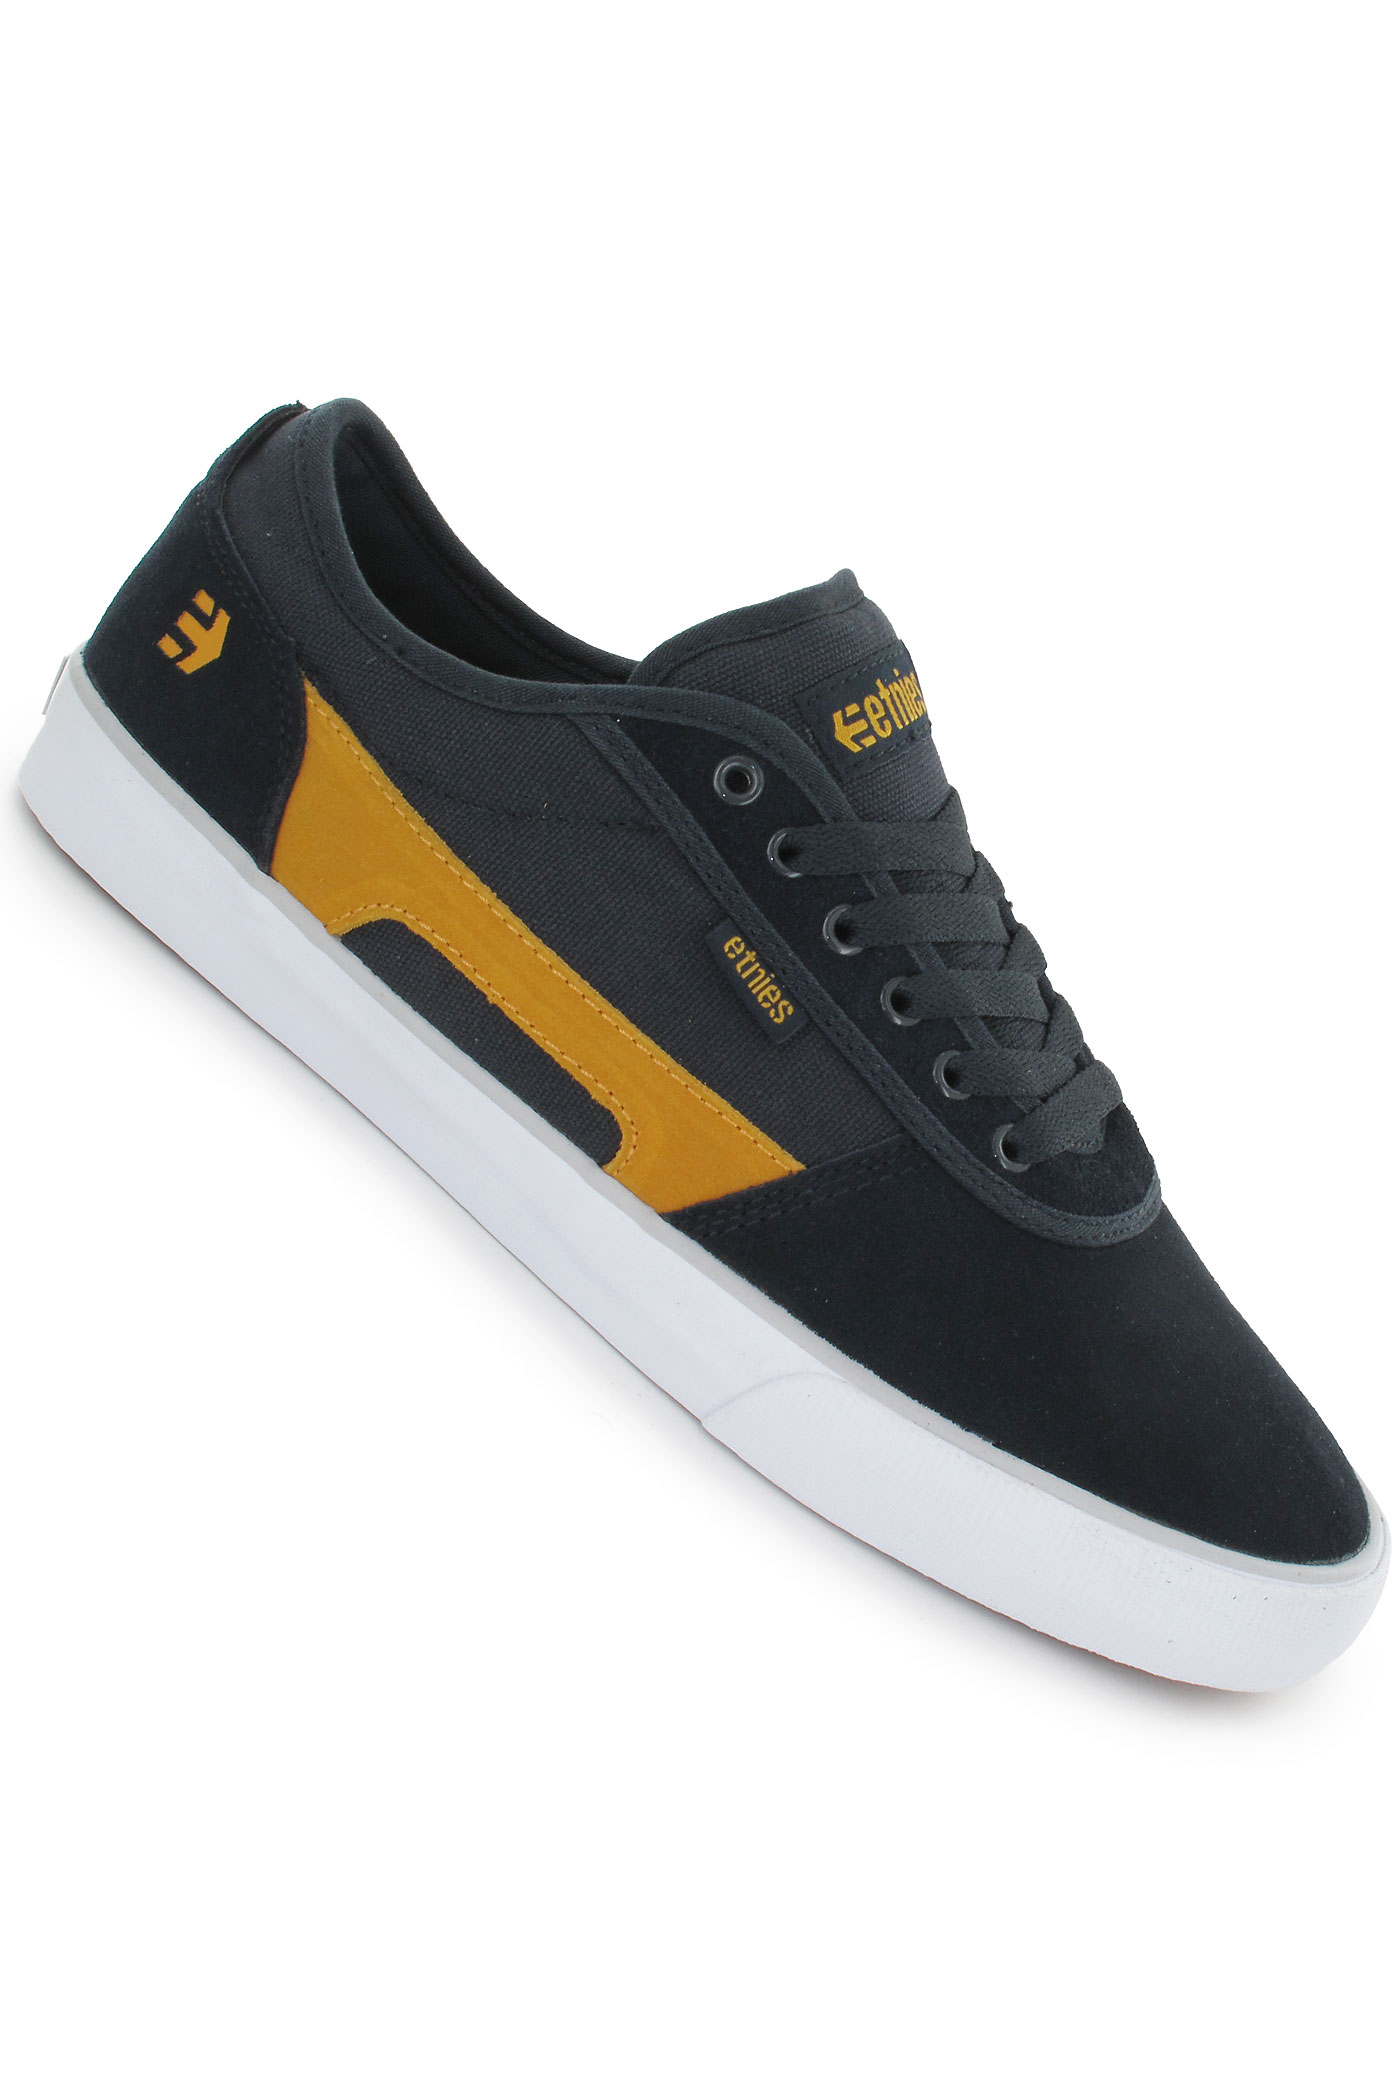 Home Page » Shoes » Skateboard shoes and Sneakers » Etnies RCT Shoe ...